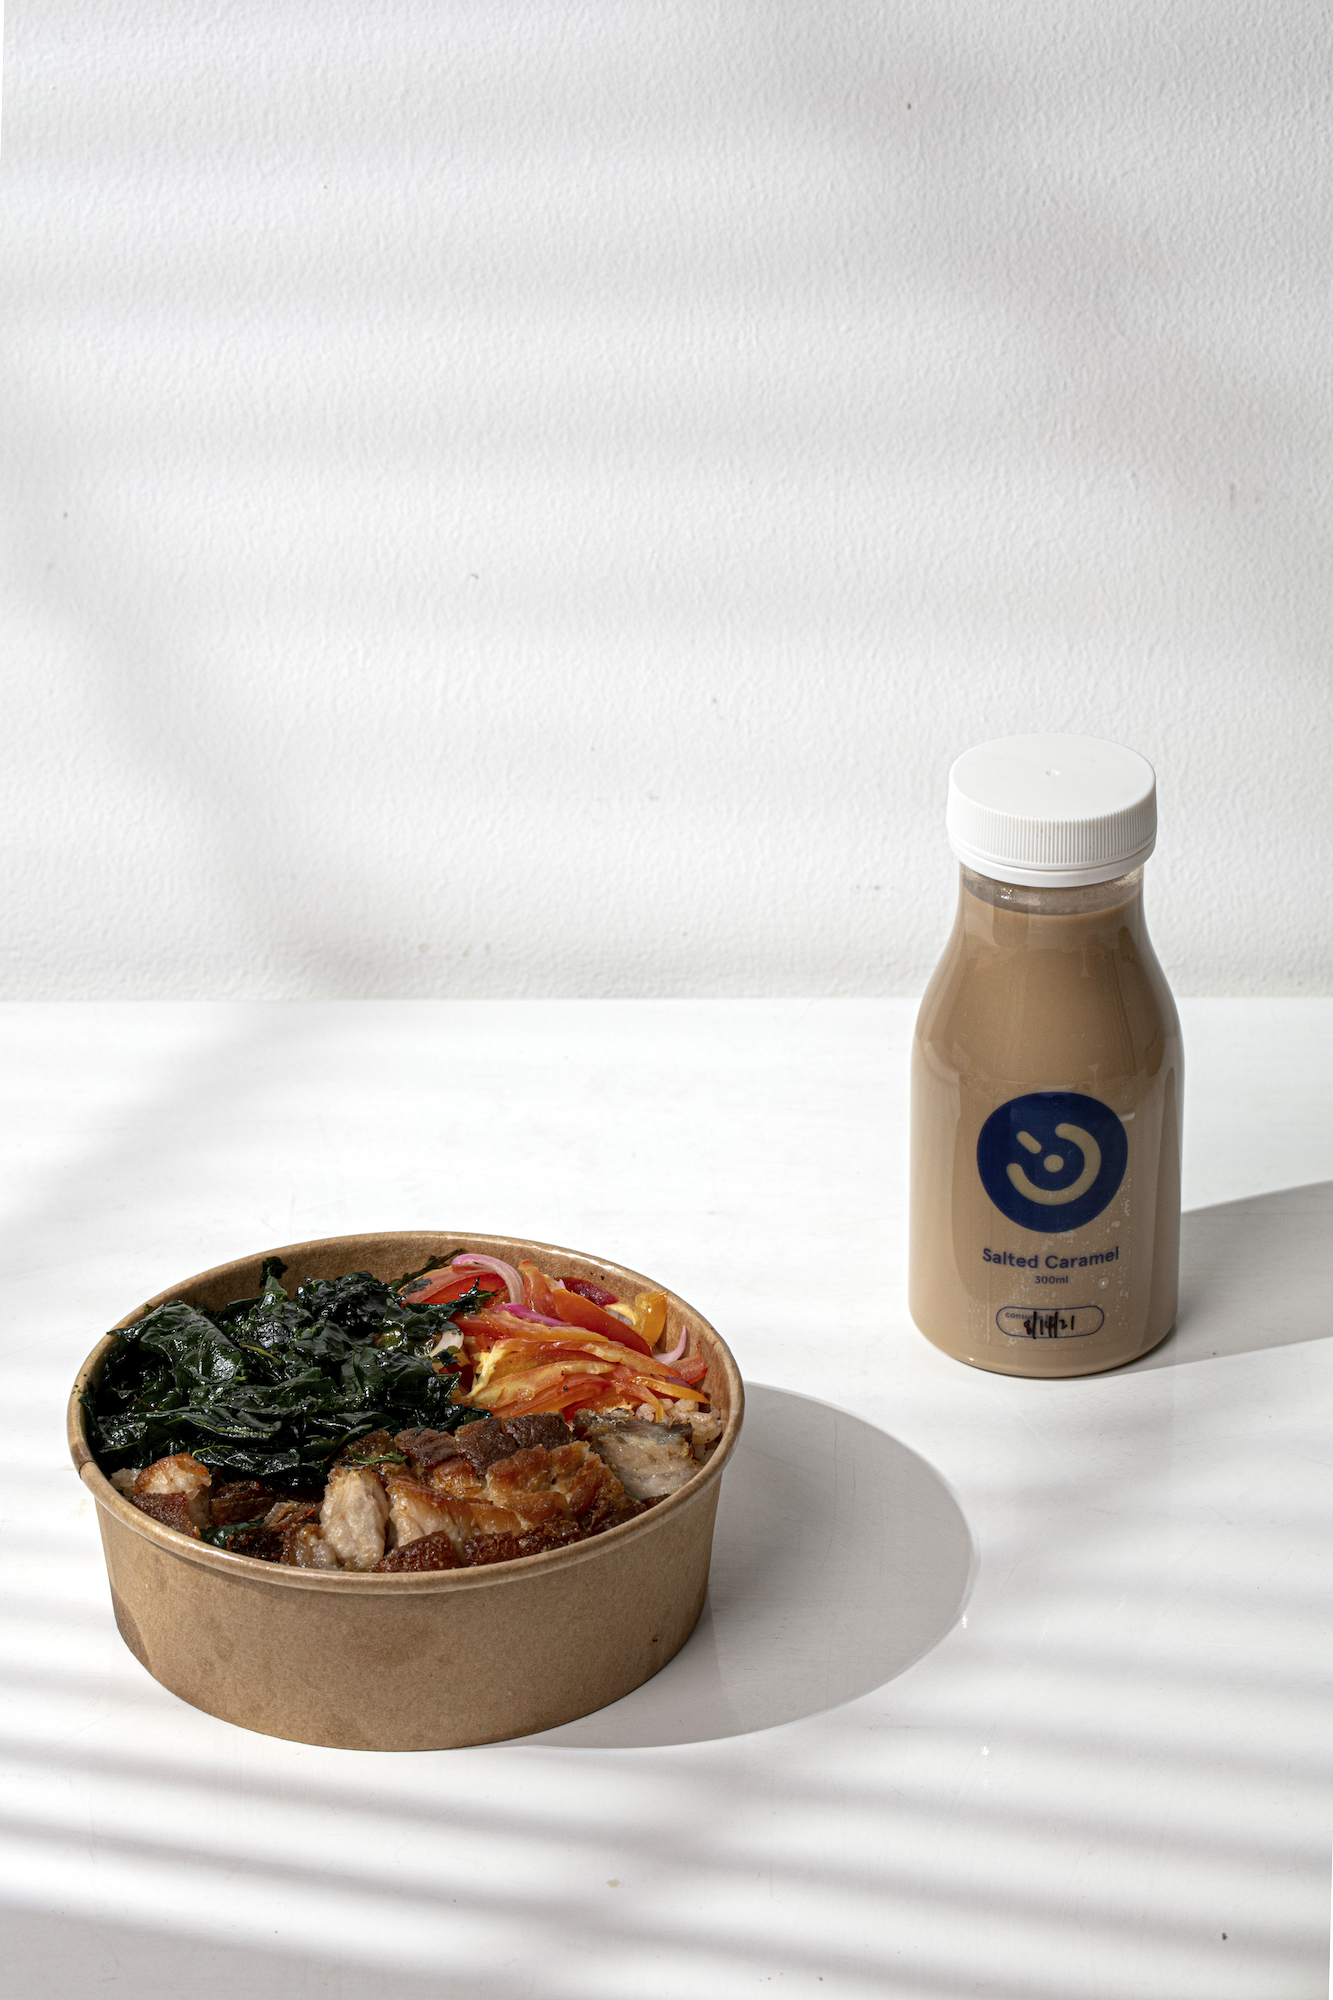 The MadEats ecosystem includes four in-house food brands, namely Yang Gang, Chow Time, Fried Nice, and Dot Coffee.